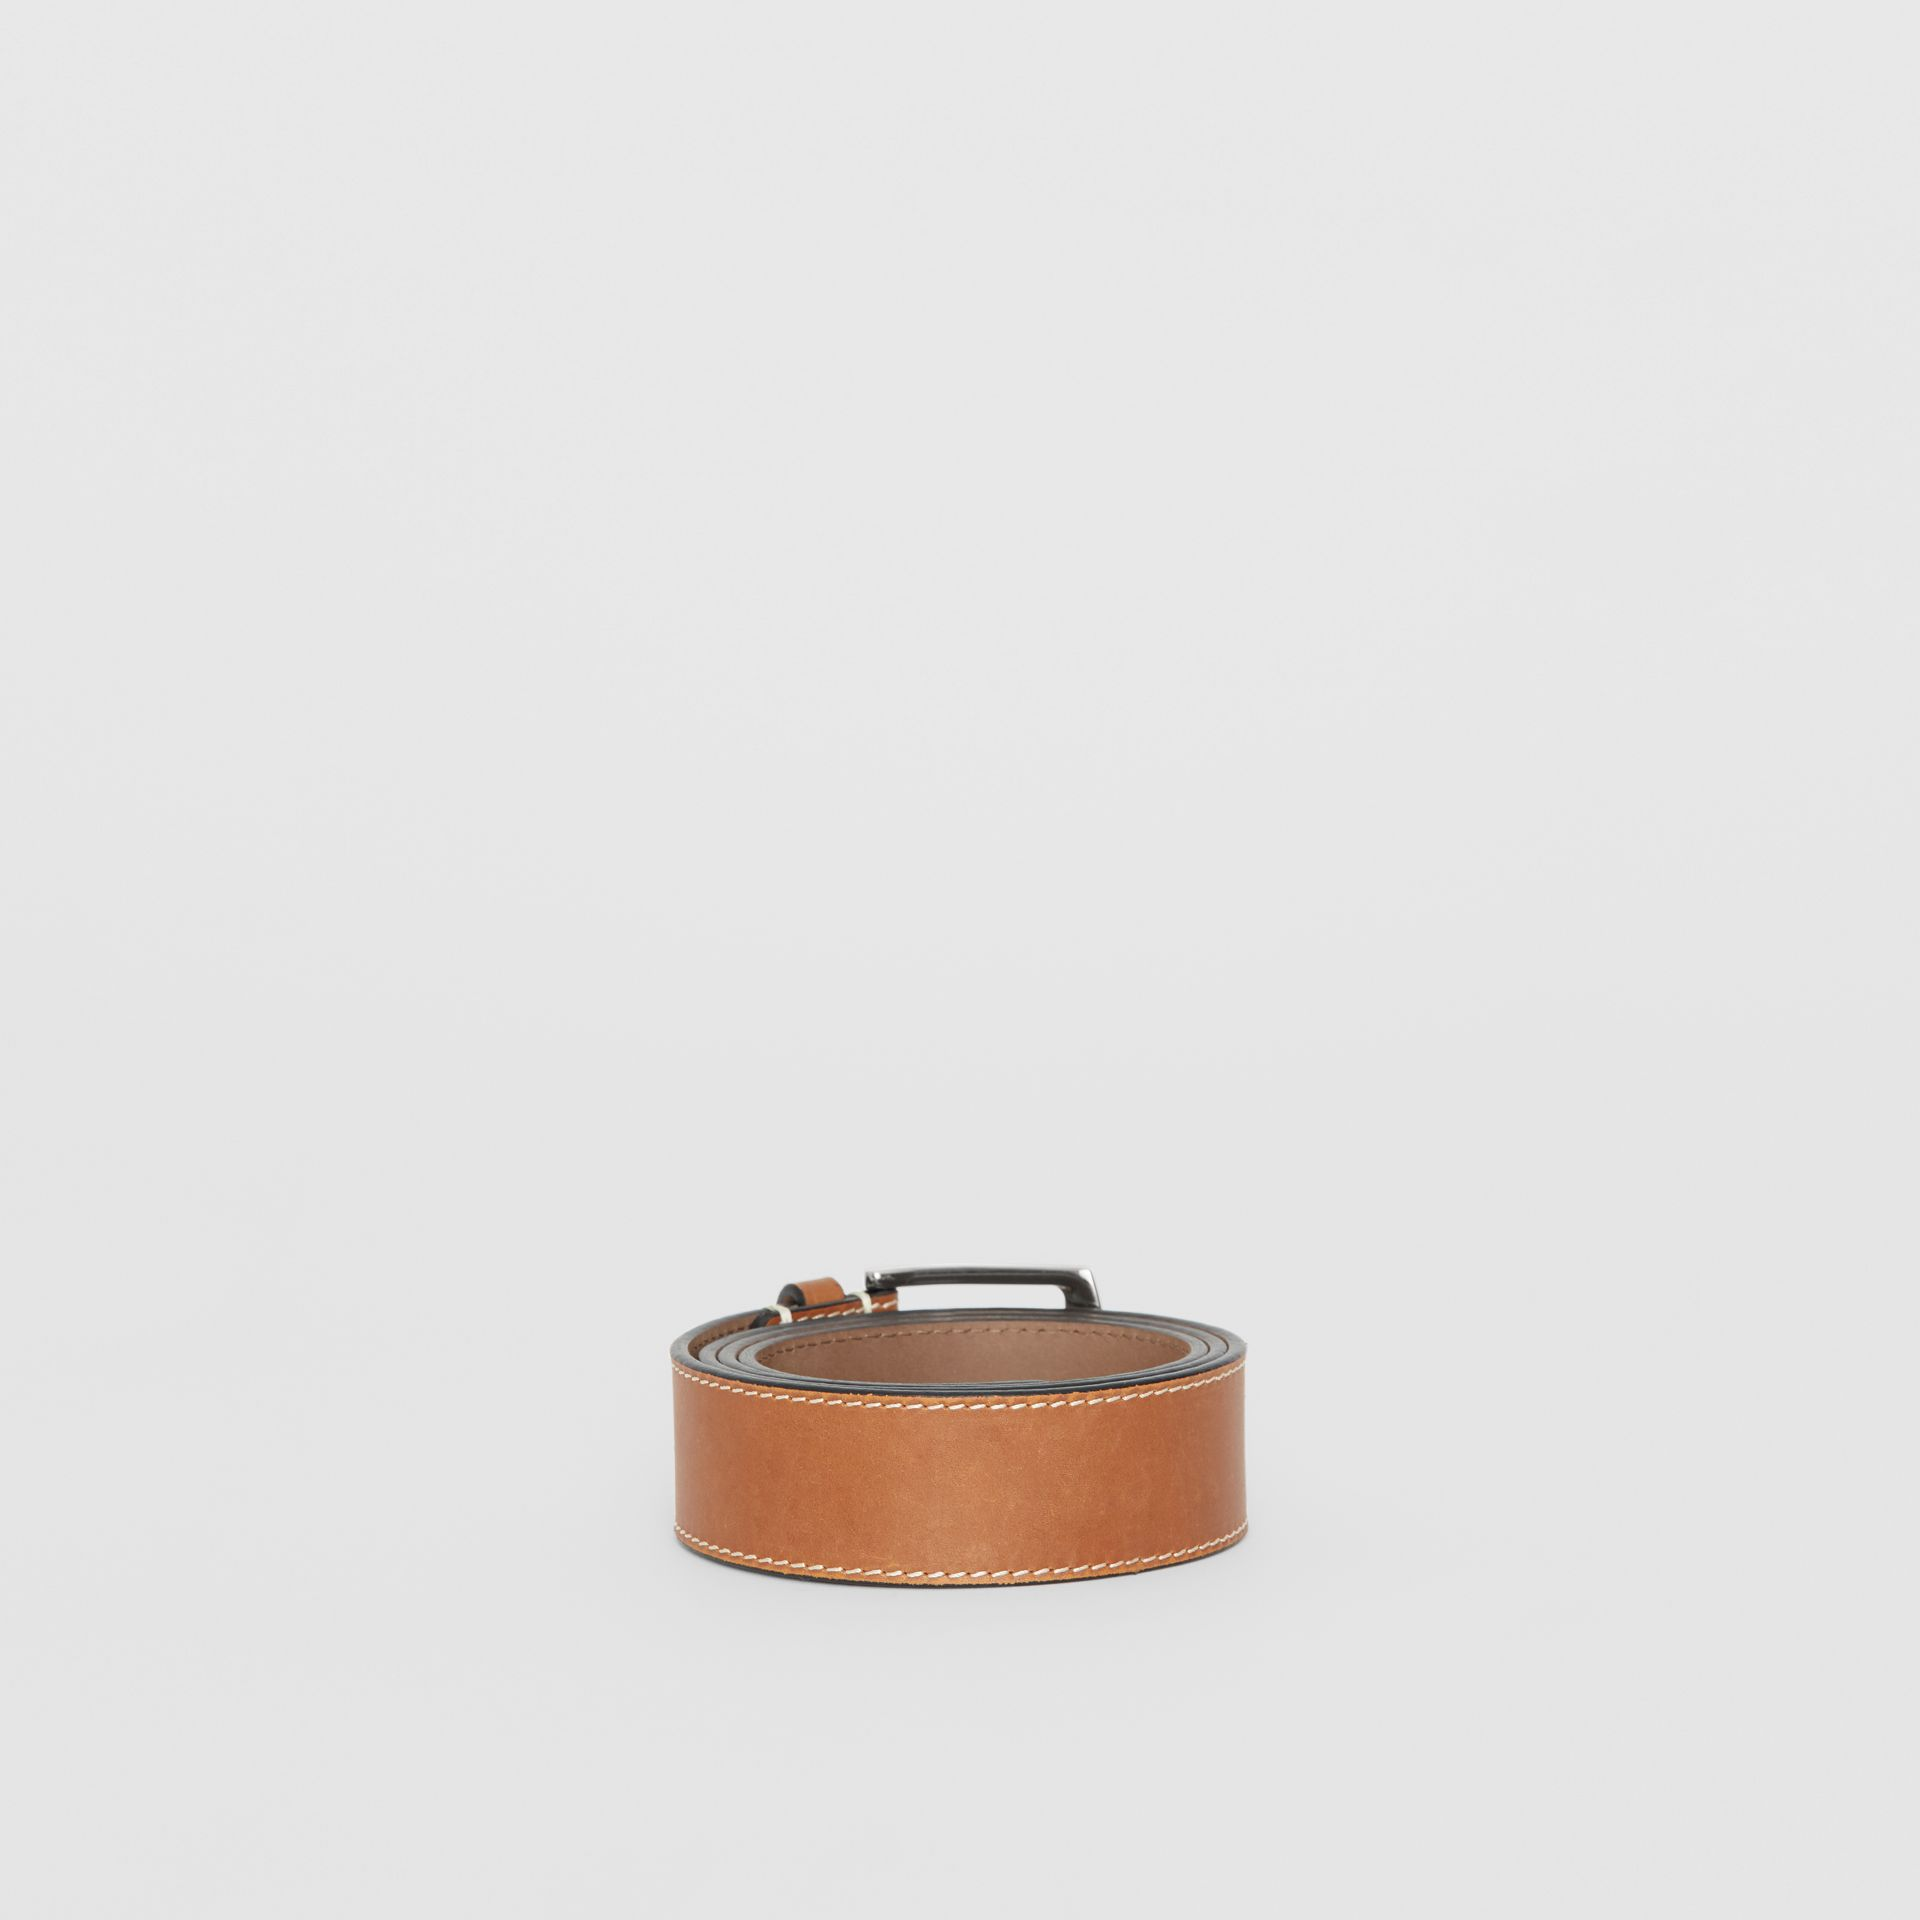 Topstitched Leather Belt in Tan - Men | Burberry United States - gallery image 4